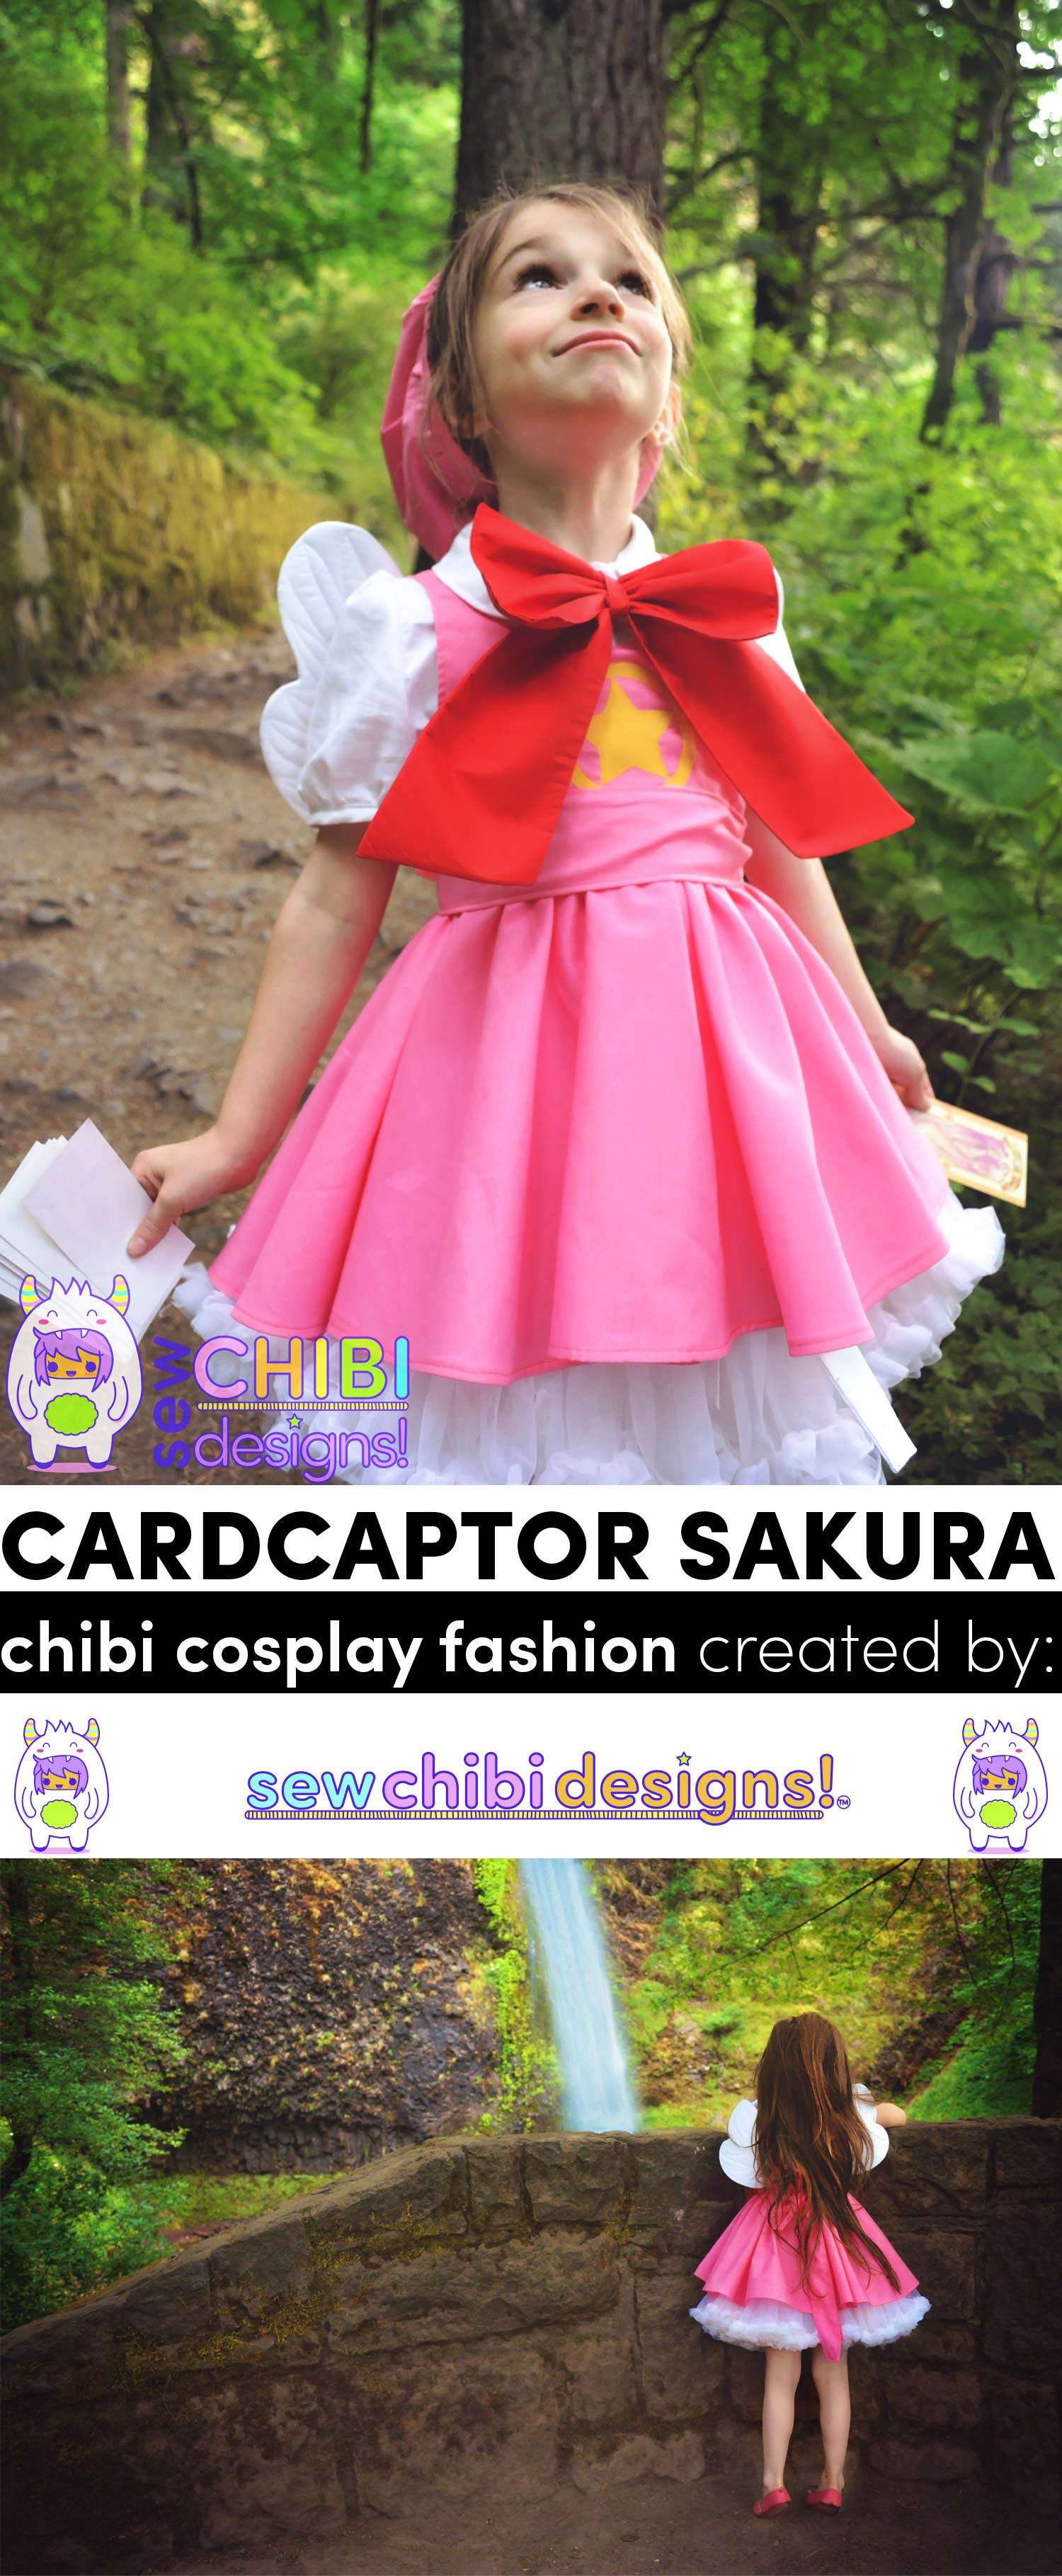 chibi Cardcaptor Sakura cosplay created and sewn by Sew Chibi Designs for Classic Anime themed Sew Geeky Series!